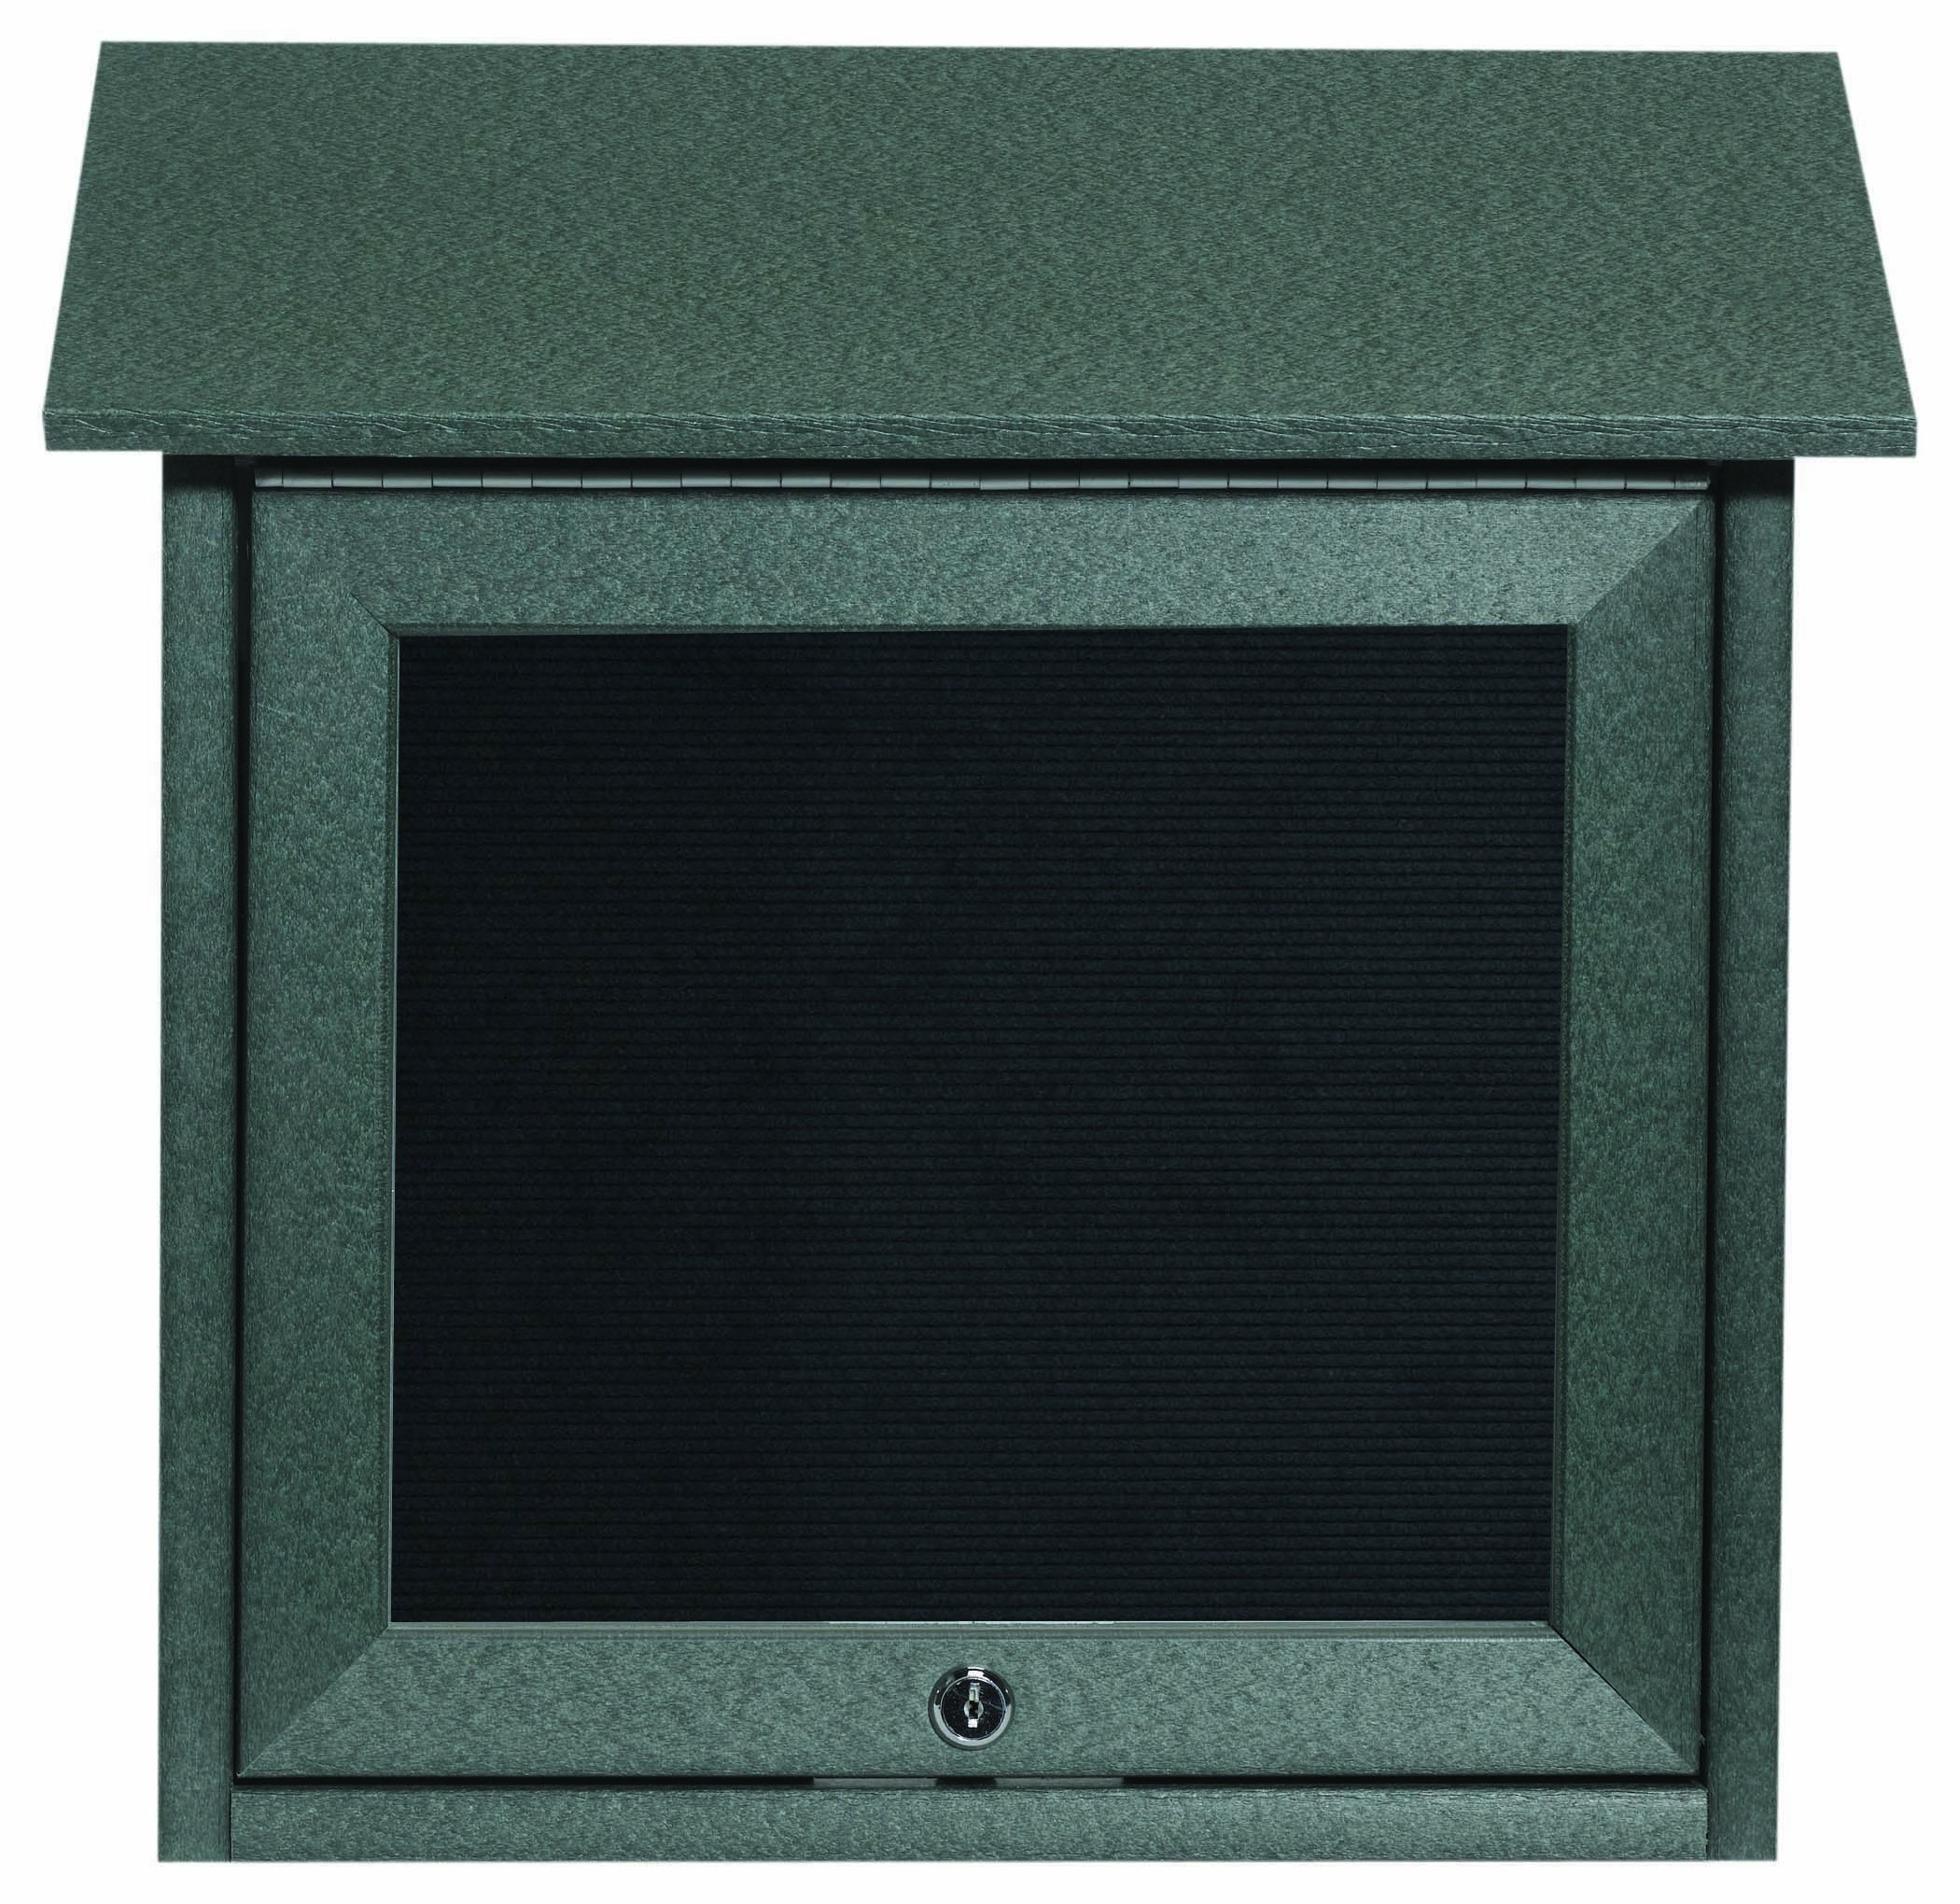 """Aarco Products OPLD1818L-4 Green Slimline Series Top Hinged Single Door Plastic Lumber Message Center with Letter Board 18""""H x 18""""W"""